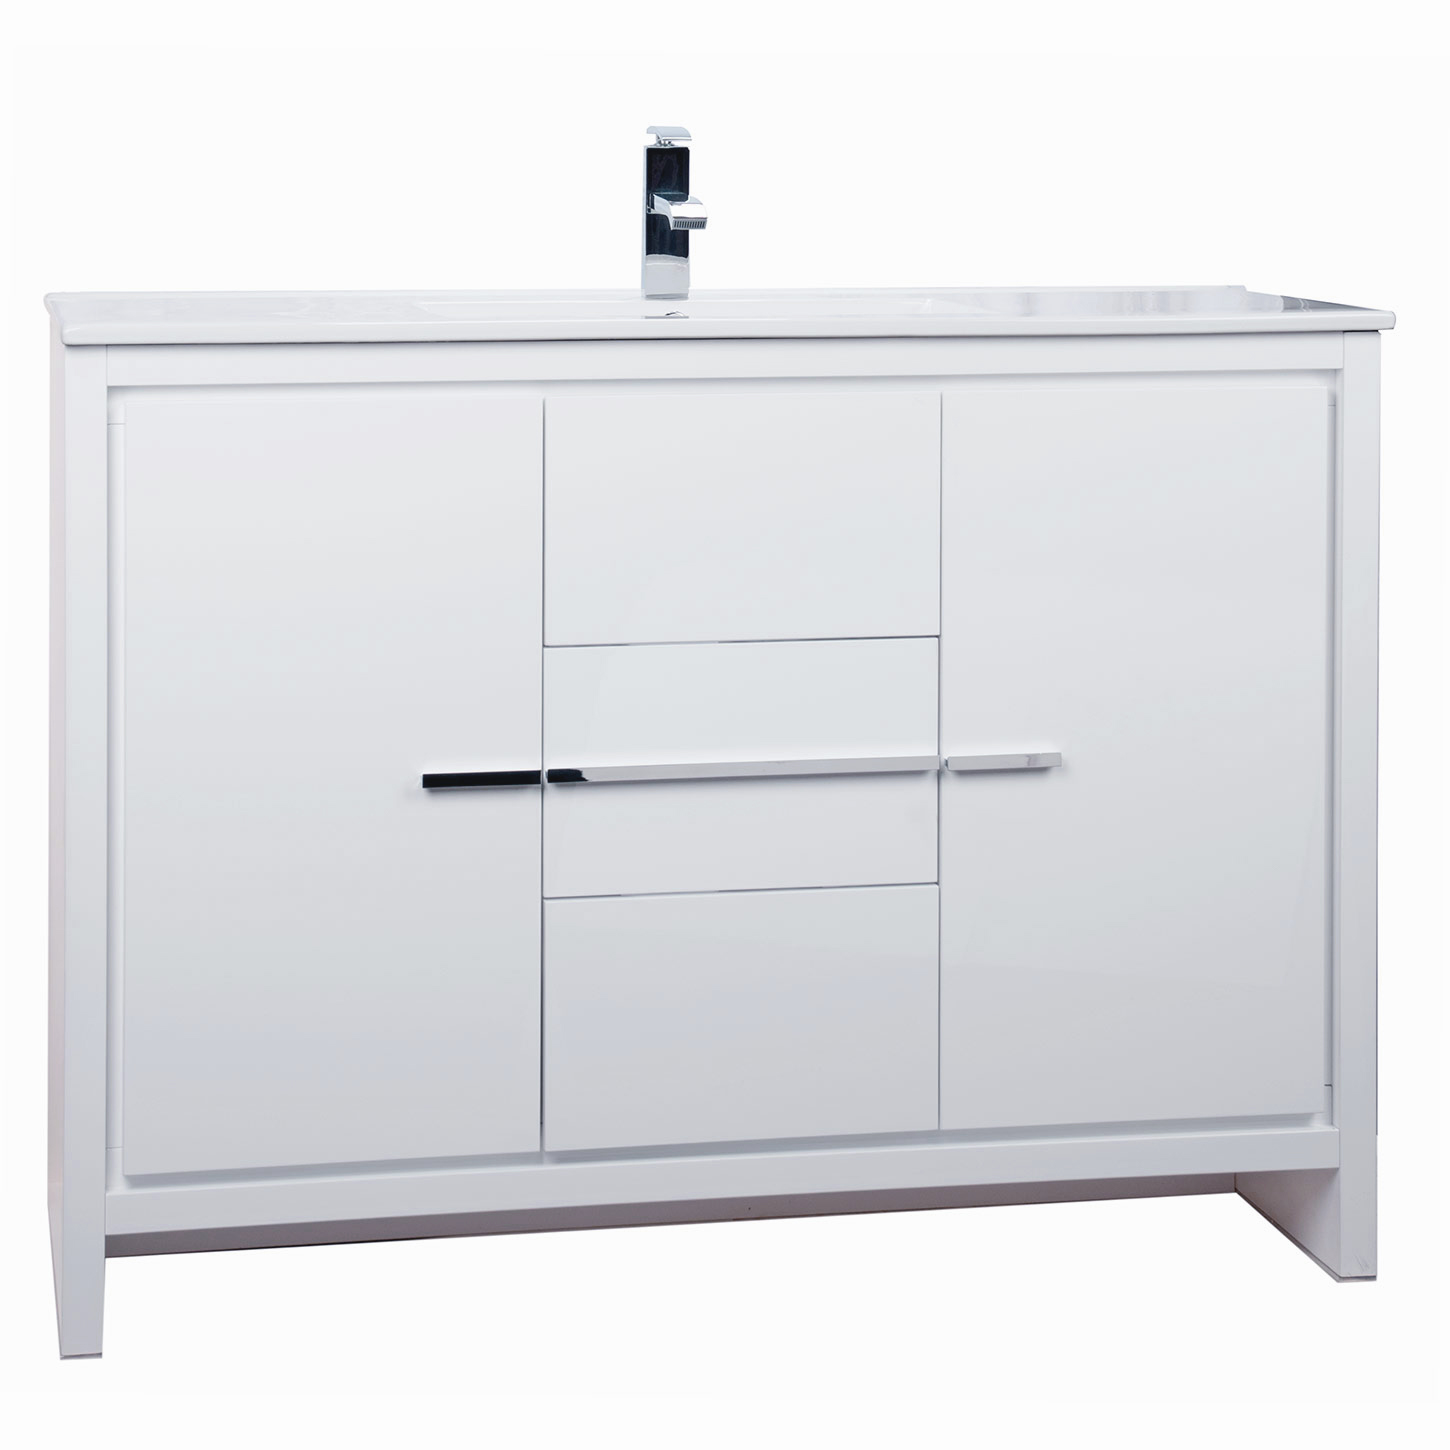 image cablecarchic sink cdbossington bathroom inch cabinet double white decorative design vanity interior of